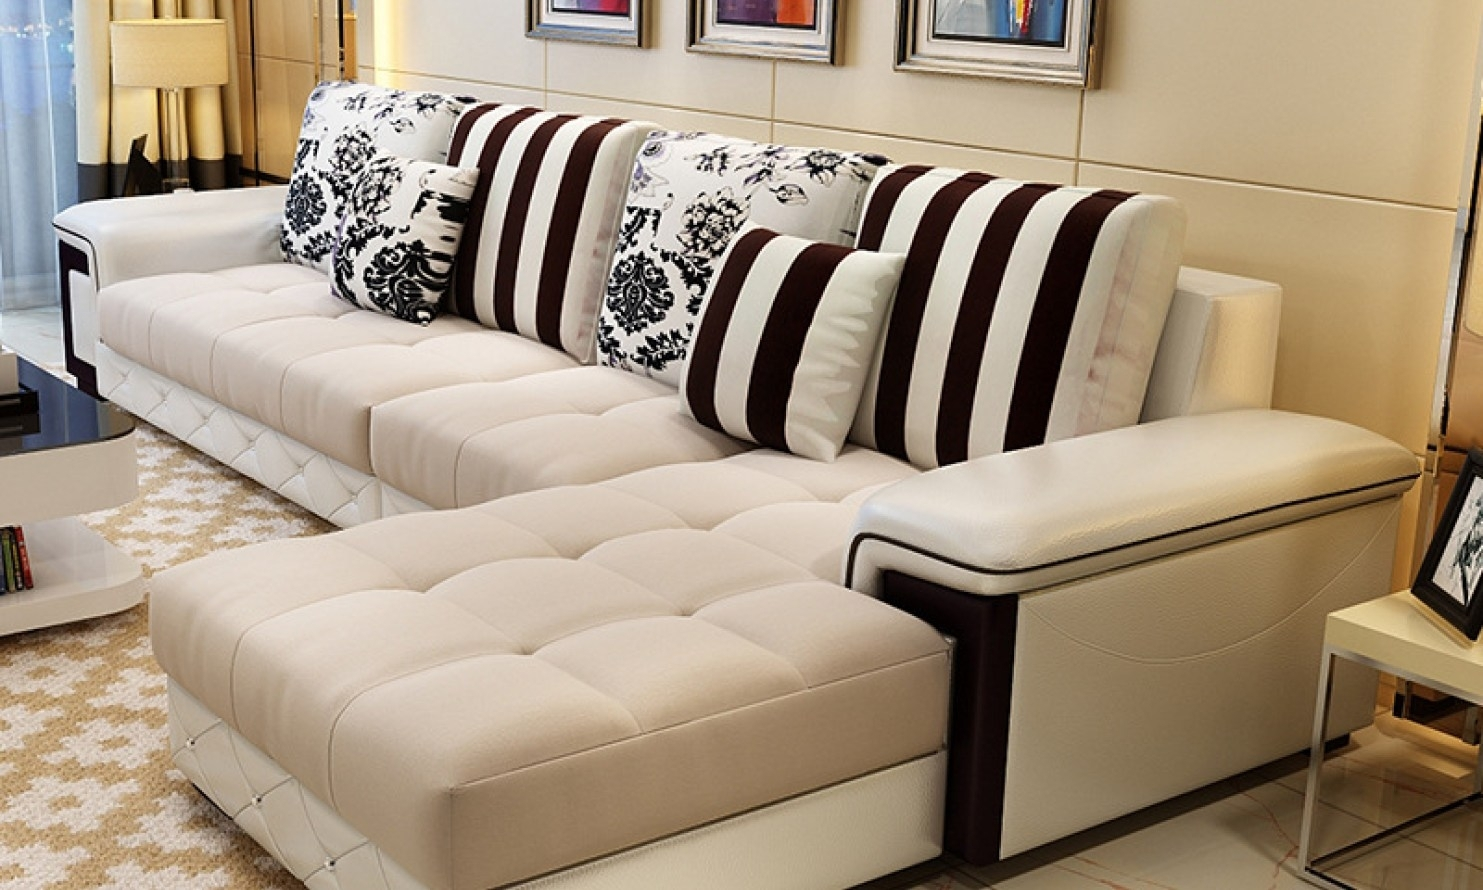 Uncategorized : Sofa For Studio Apartment Inside Greatest Sofa Small With Regard To Apartment Sofas (Photo 10 of 10)